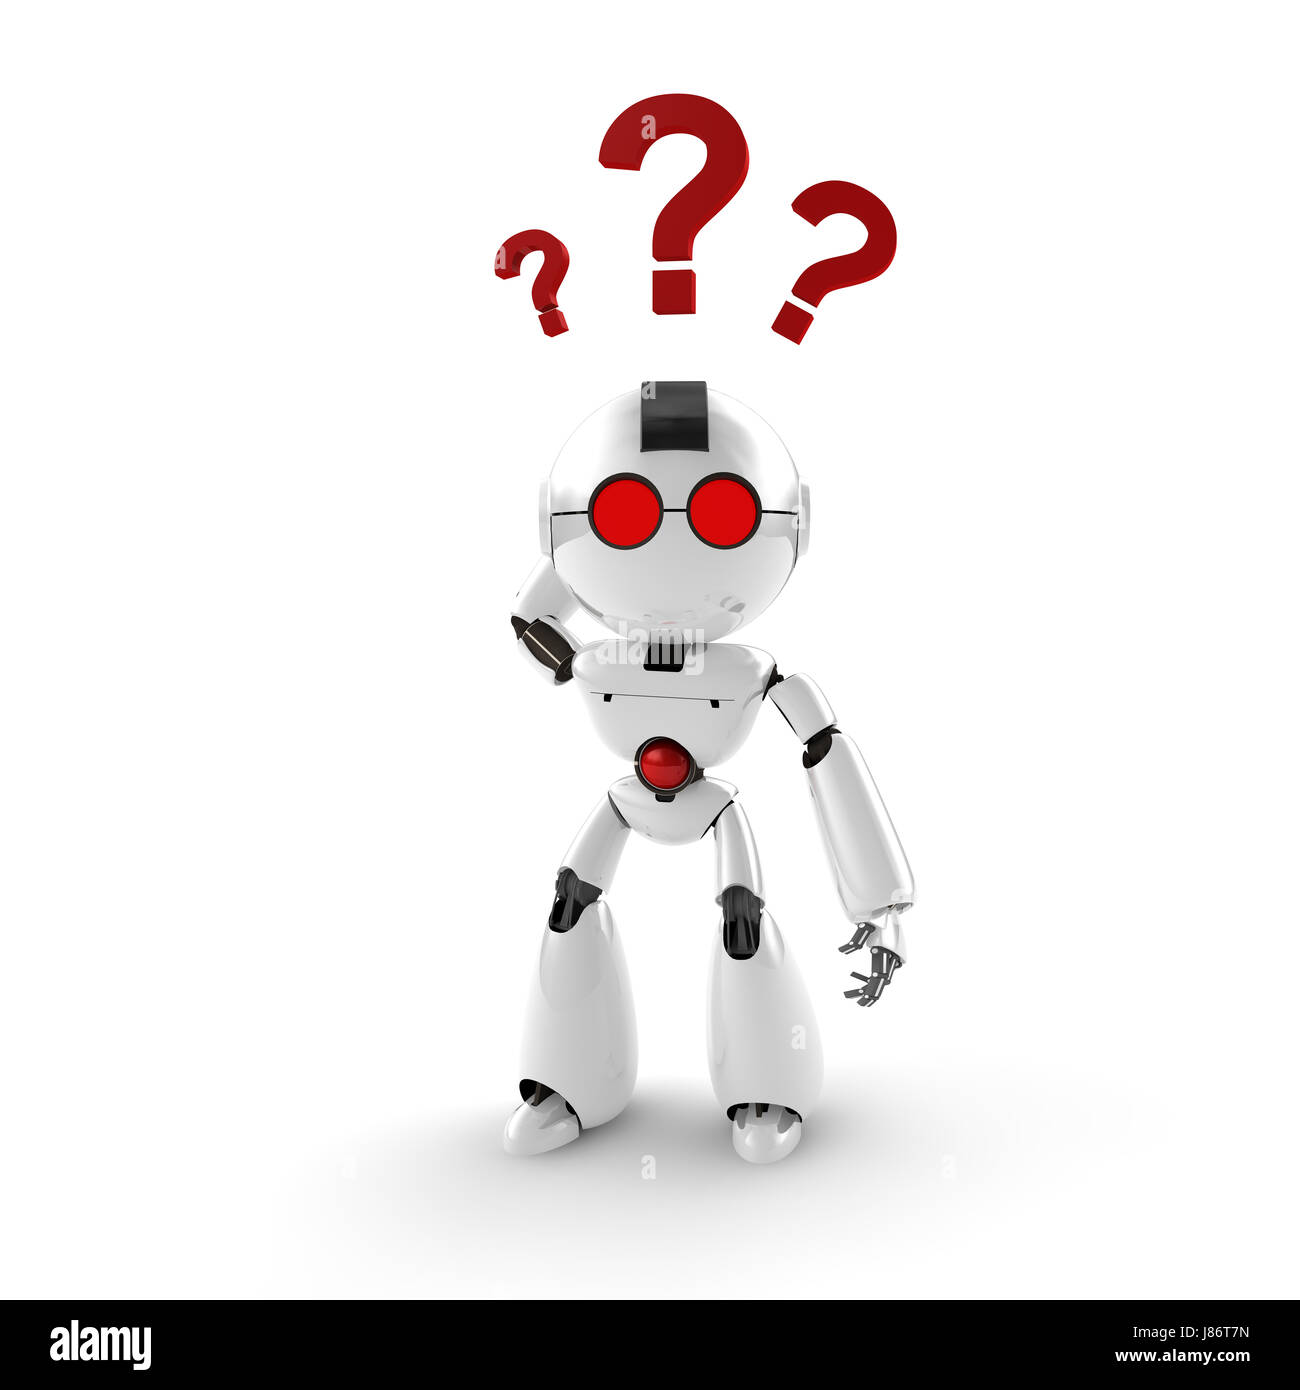 query asked ask question demand question mark helplessness perplexity robot - Stock Image